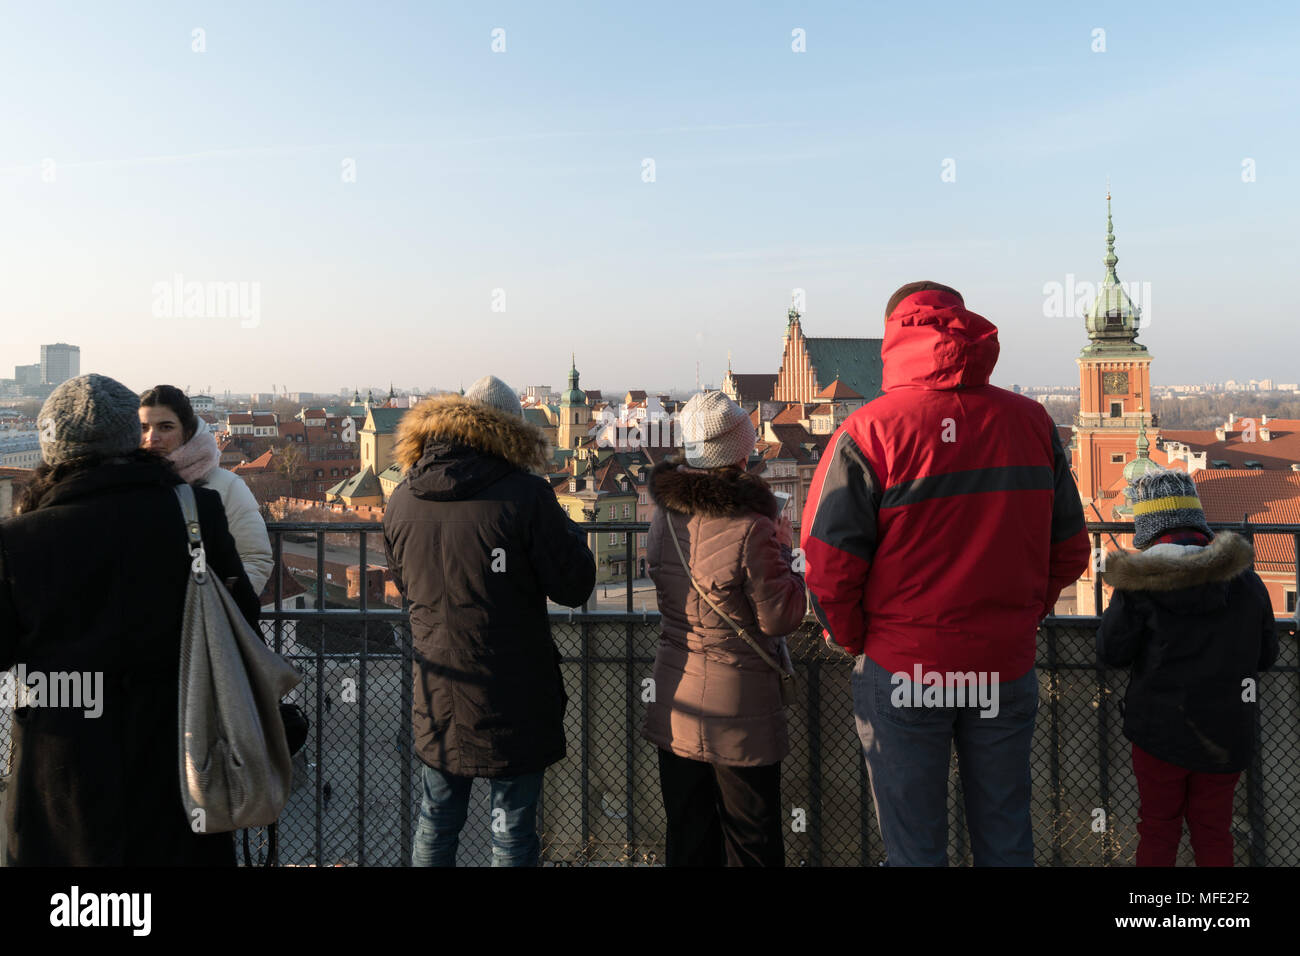 Warsaw, Poland - March 4 2018: Tourists enjoy the view over Warsaw old town from an observatory tower in Poland capital city. - Stock Image